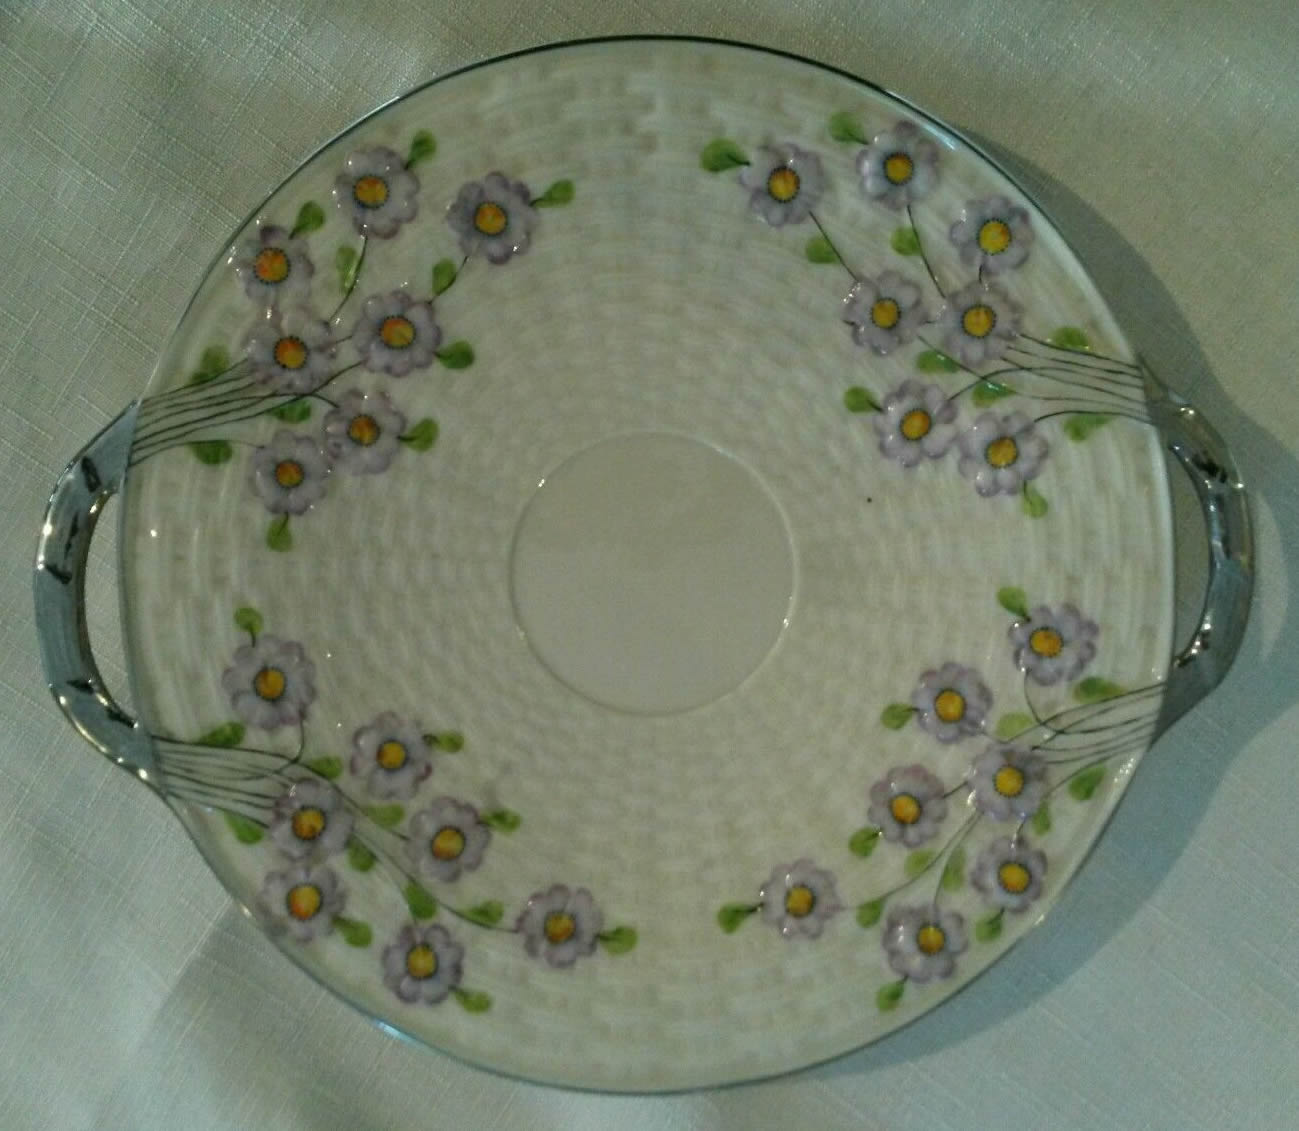 Painted Daisy pattern on Shamrock Bread Plate Third Mark